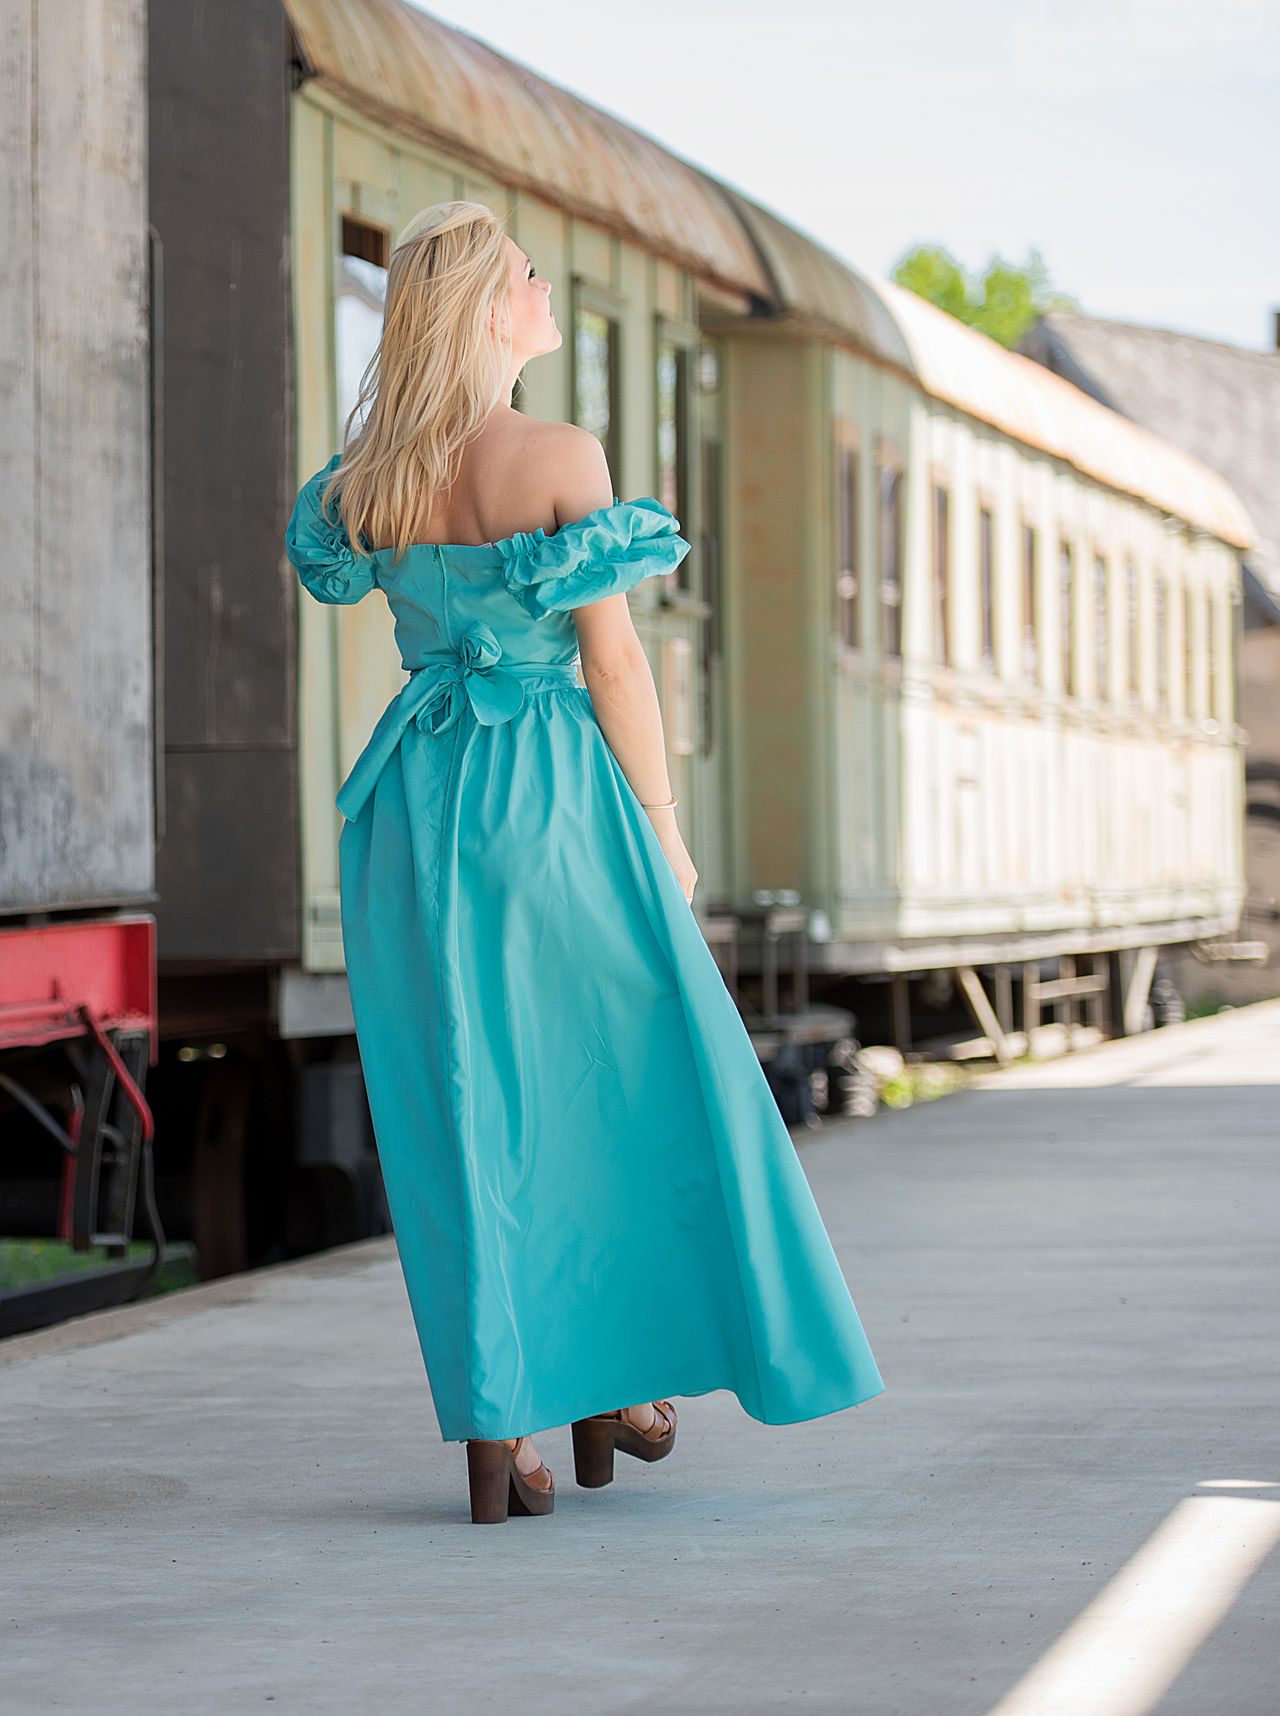 beautiful woman on the platform Architecture Beautiful Woman Blond Hair Blue Built Structure Day Full Length Green Dress Leisure Activity Lifestyles Model One Person Outdoors People Platform Real People Romance Sexygirl Sexywoman Standing Train Station Transportation Woman Back Young Adult Young Women Live For The Story